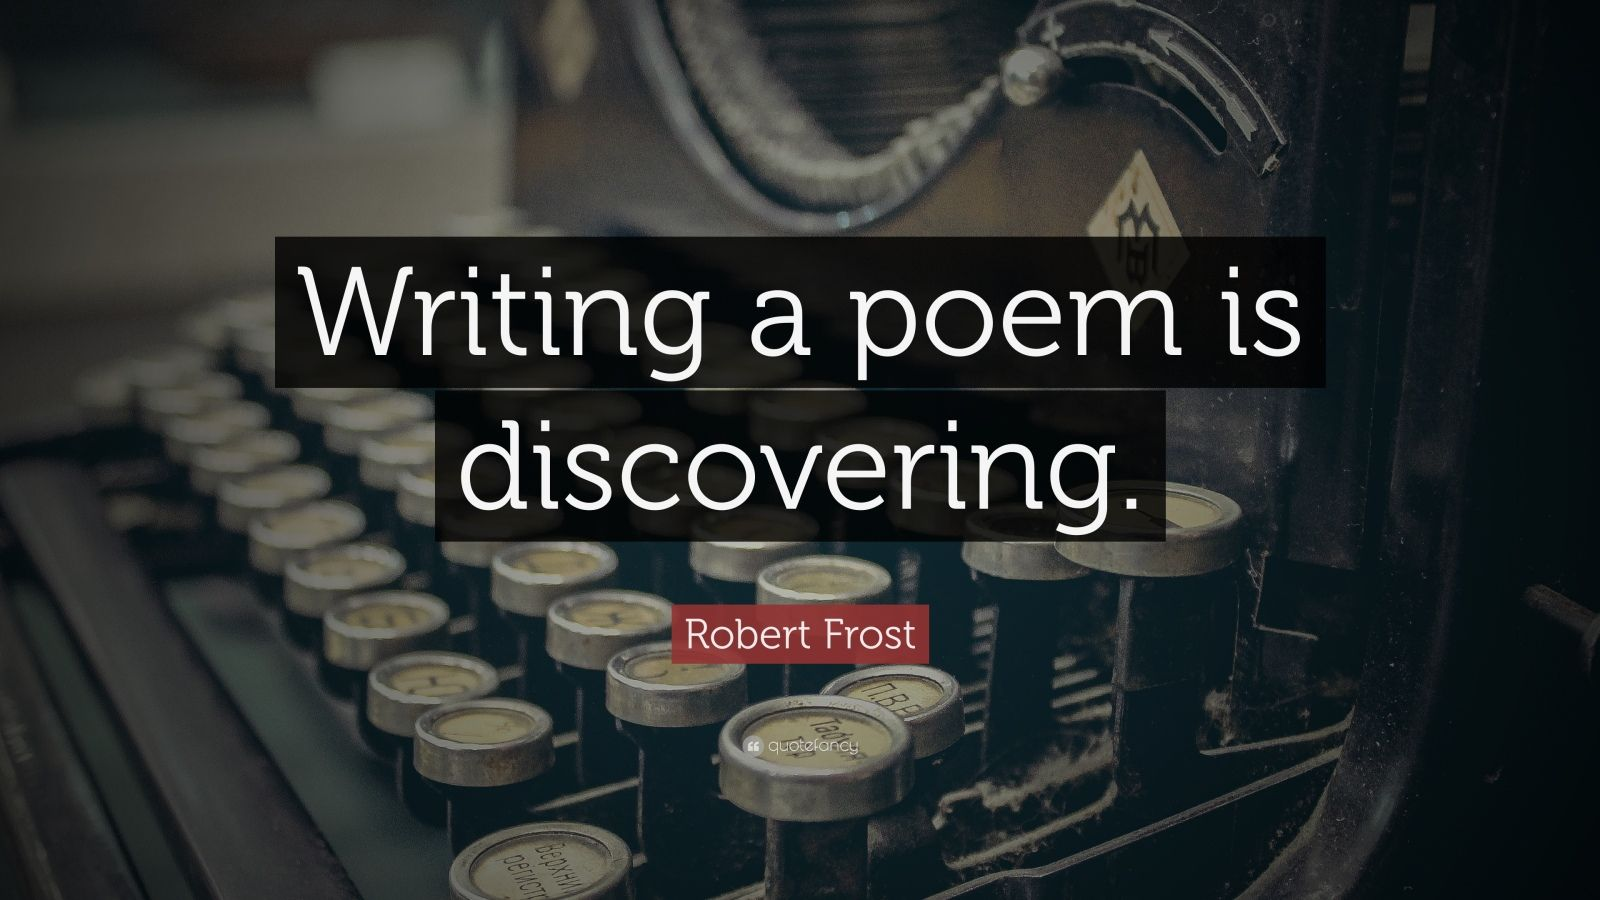 75660-Robert-Frost-Quote-Writing-a-poem-is-discovering